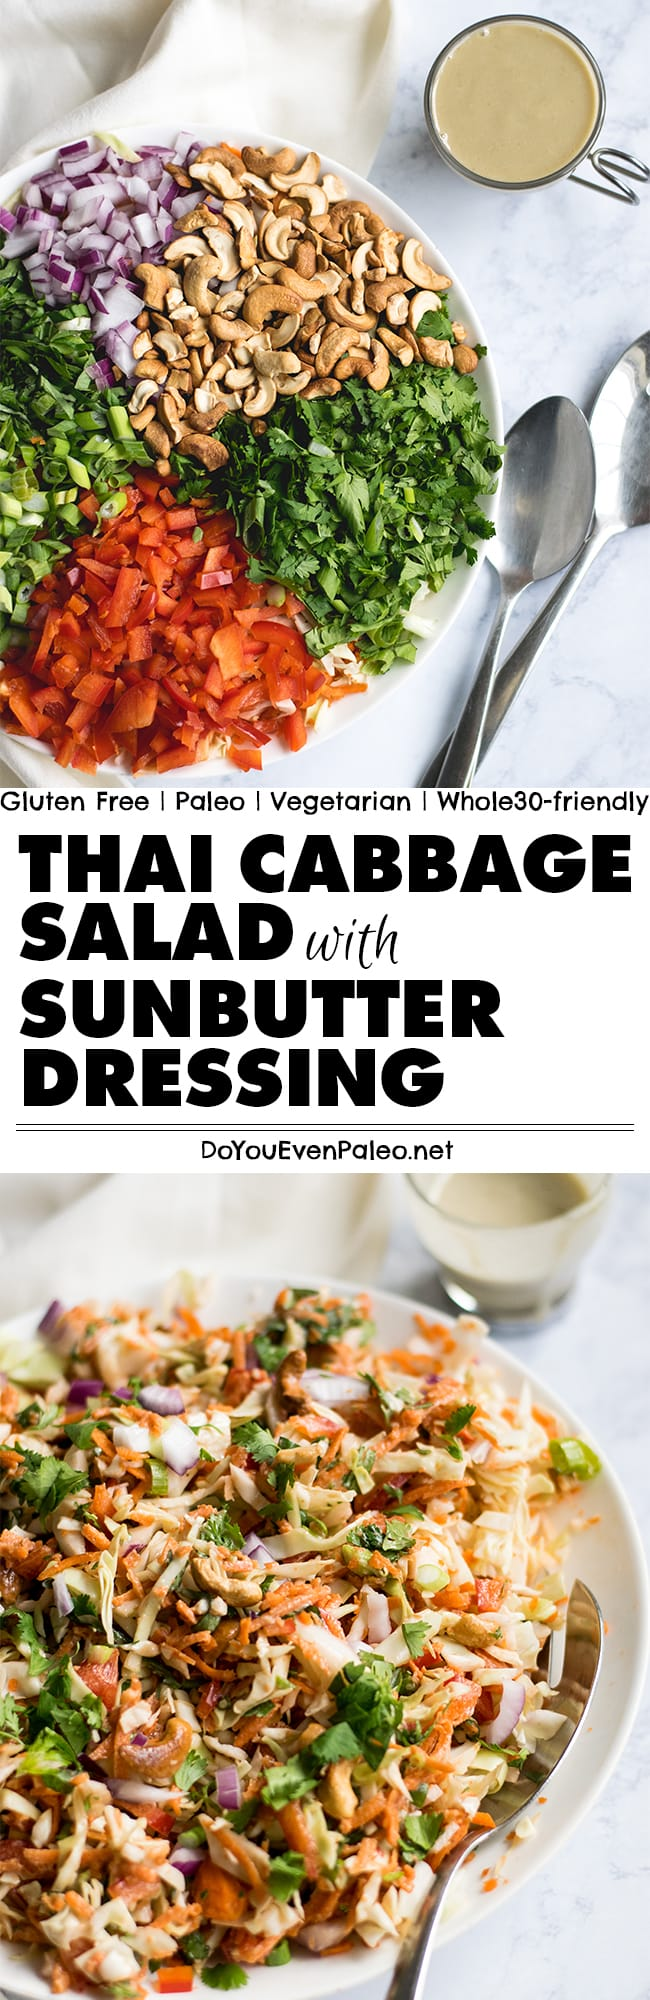 Paleo Thai Cabbage Salad with Sunbutter Dressing Recipe Pin | DoYouEvenPaleo.net